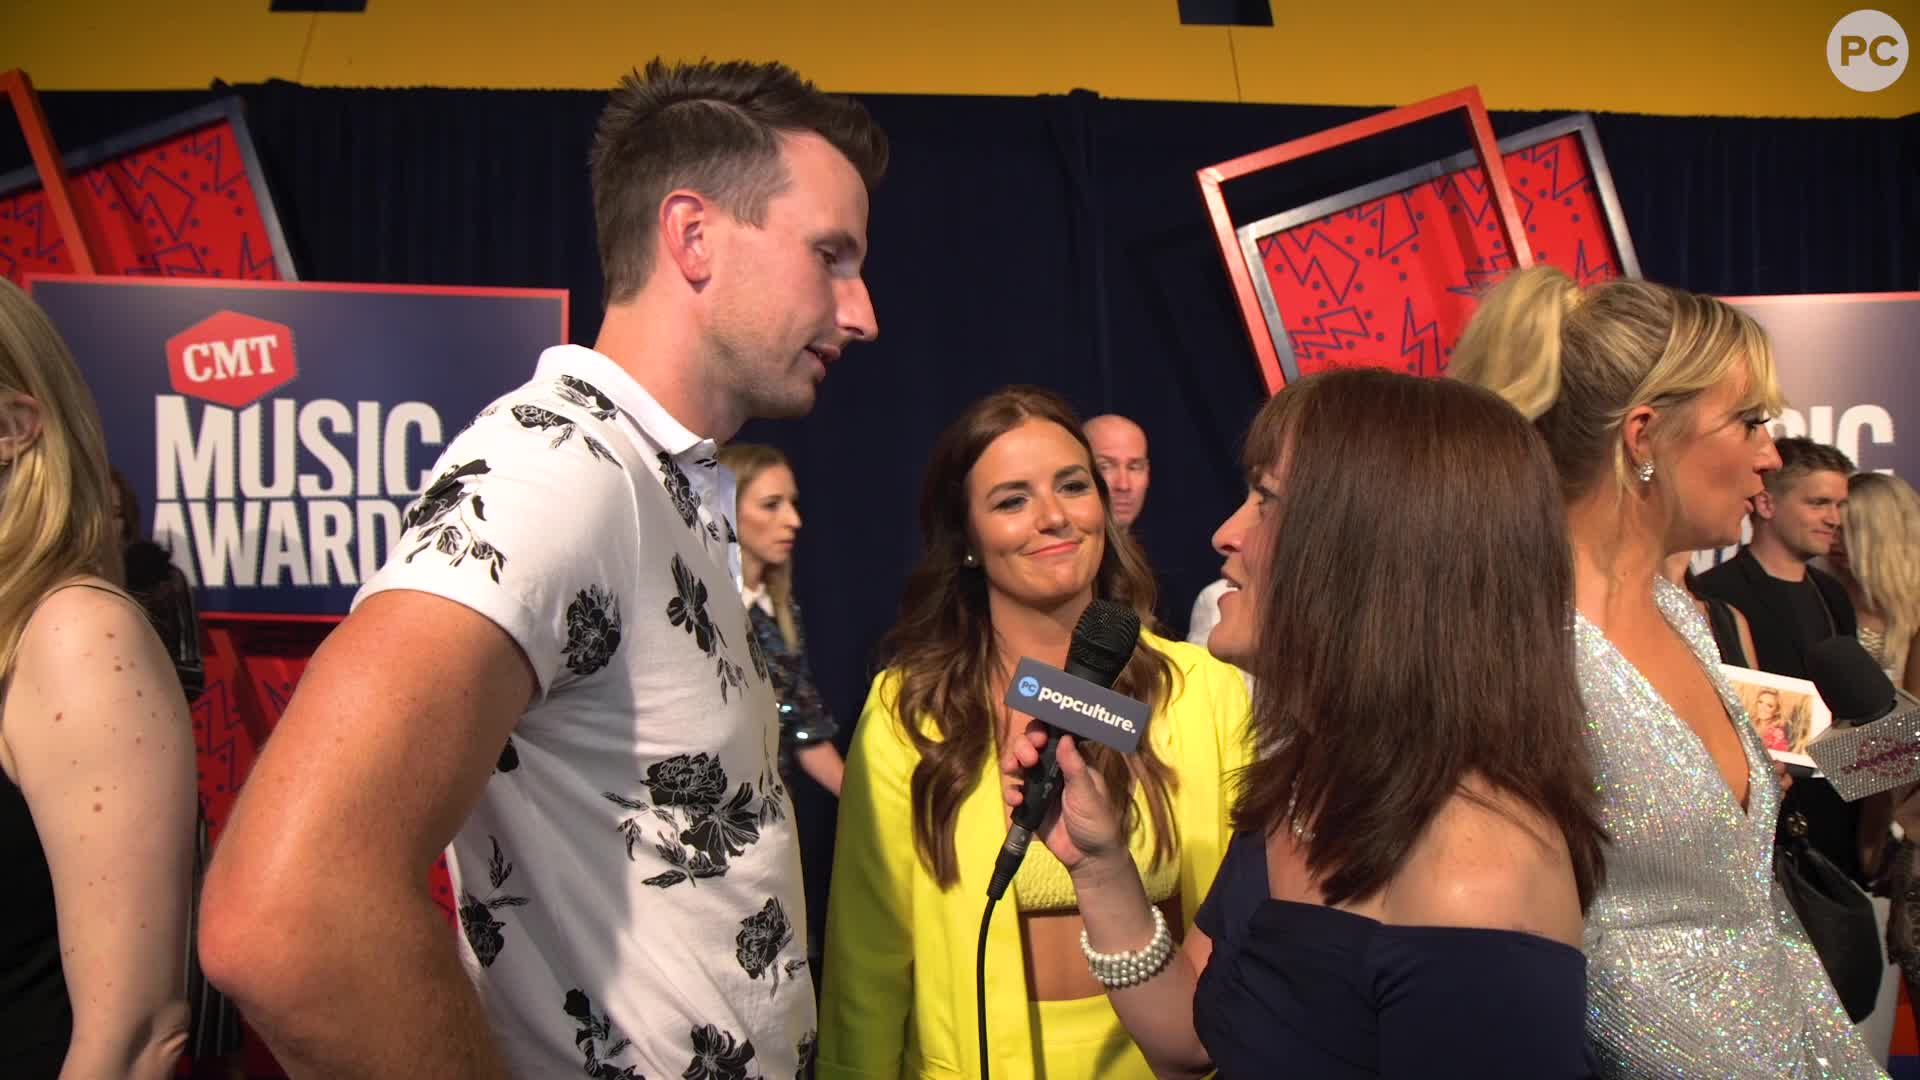 Russell Dickerson - 2019 CMT Awards Red Carpet screen capture